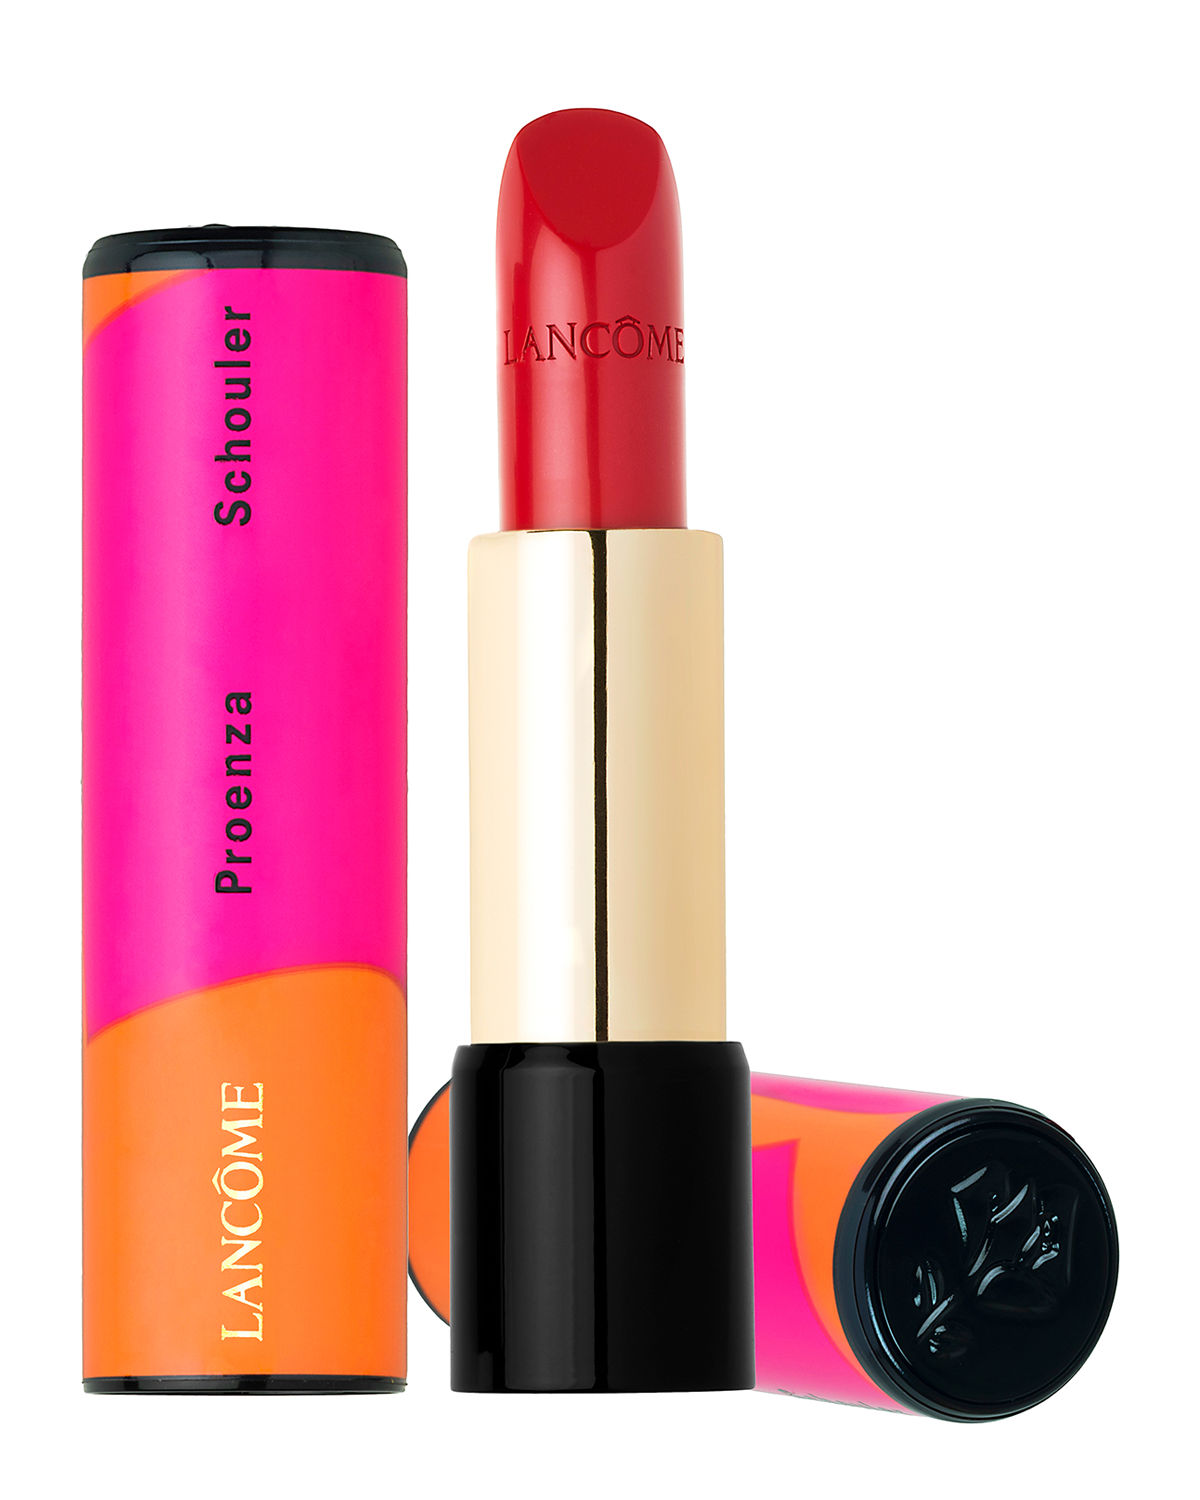 Proenza Schouler for Lanc & #244me L'Absolu Rouge Lipstick - CHROMA COLLECTION